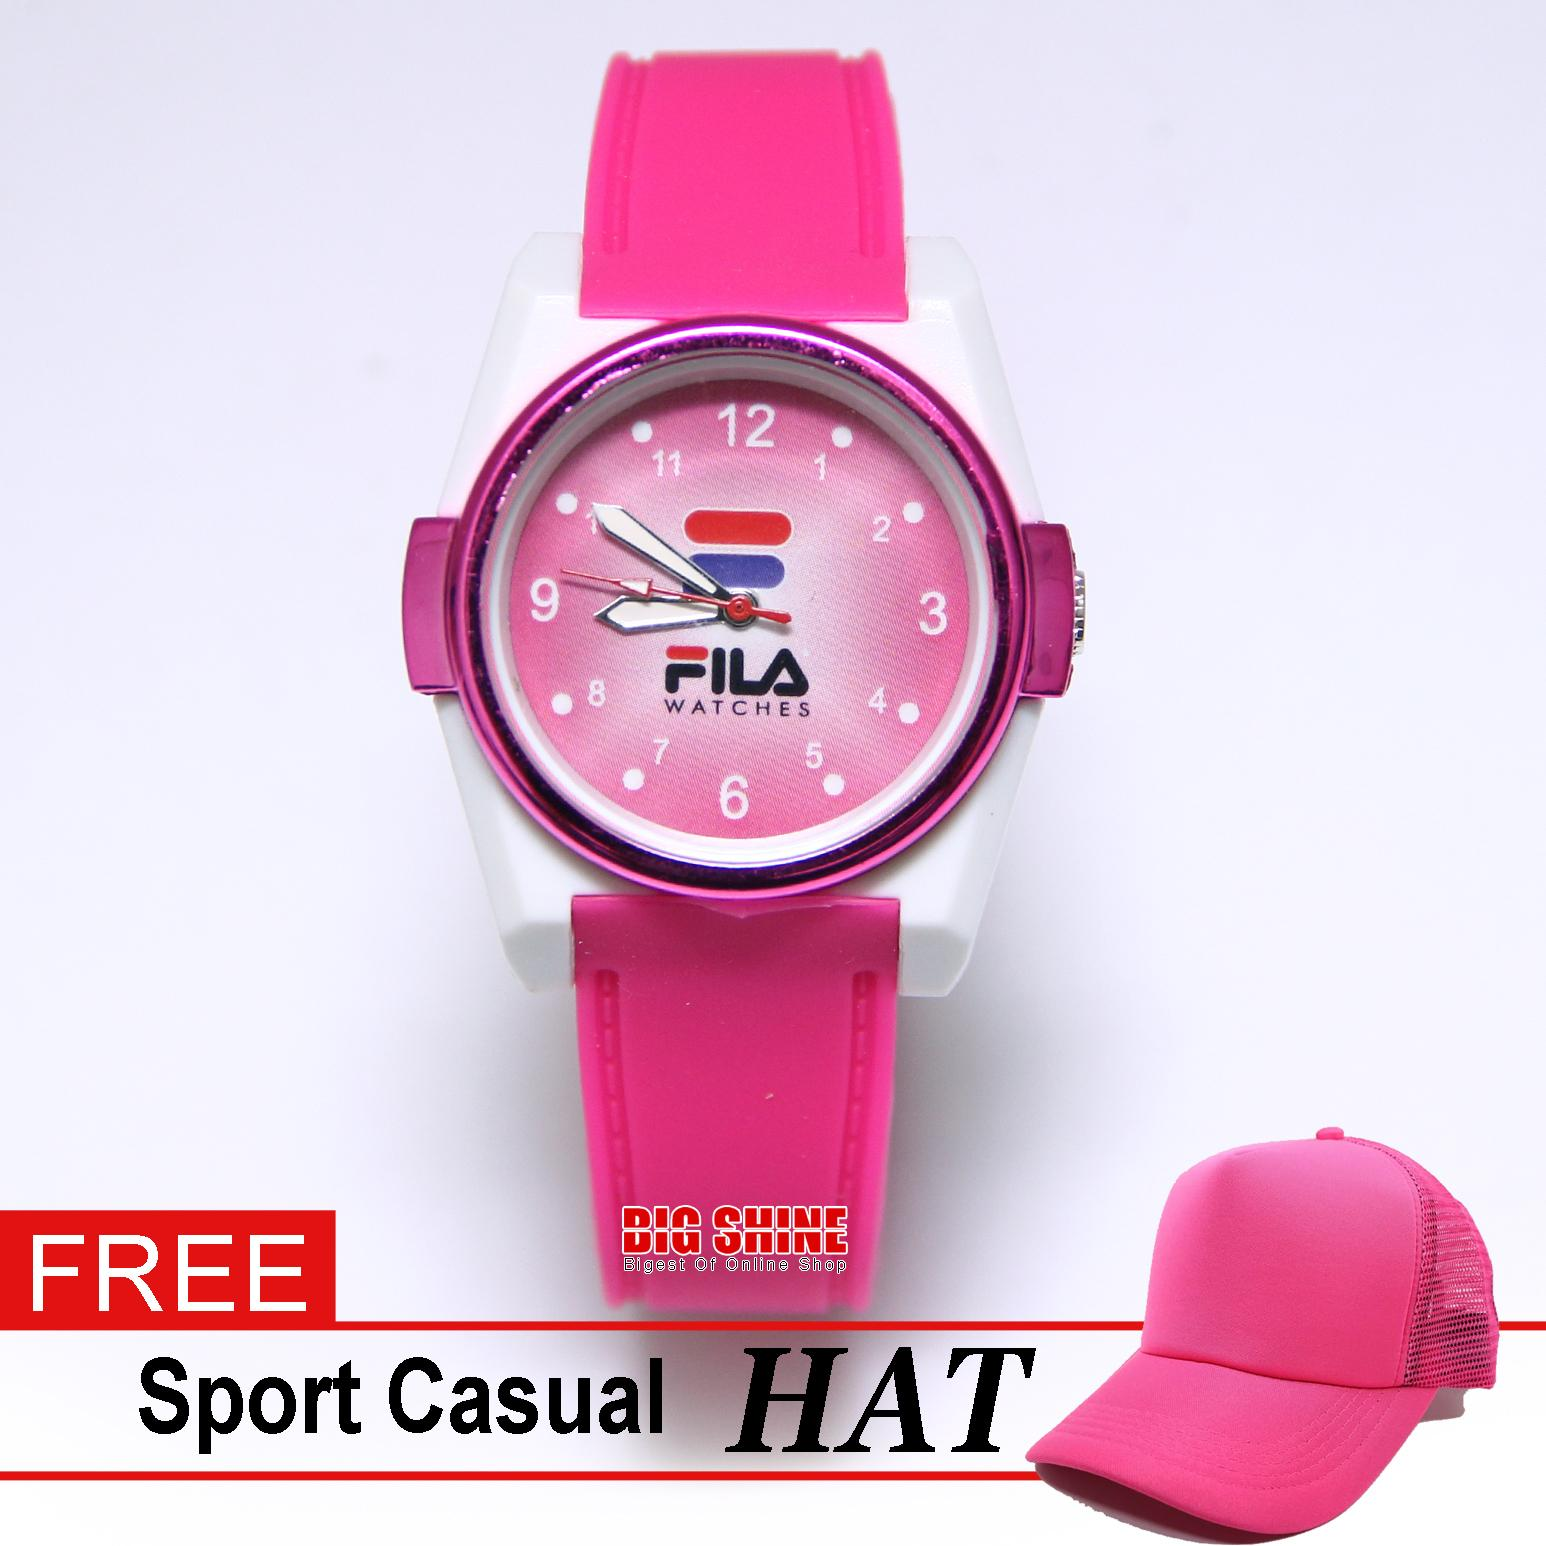 Jam Tangan Fila Sport - Fashionable - Jam Tangan Wanita / Remaja - FILA_WATCHES - Model